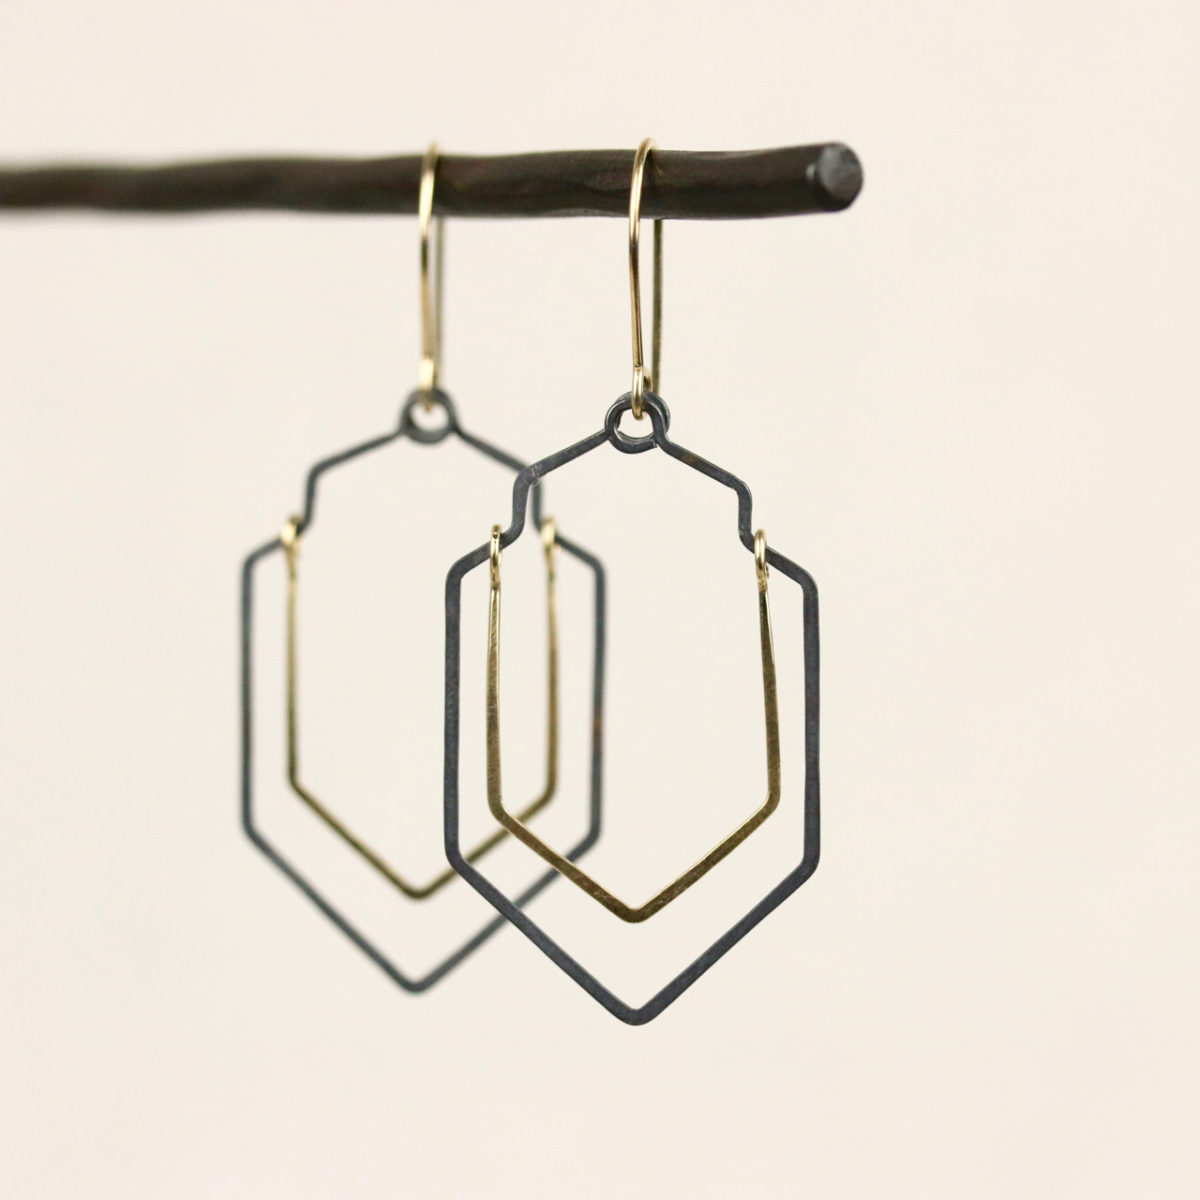 gold fill and oxidized sterling silver earrings view 2